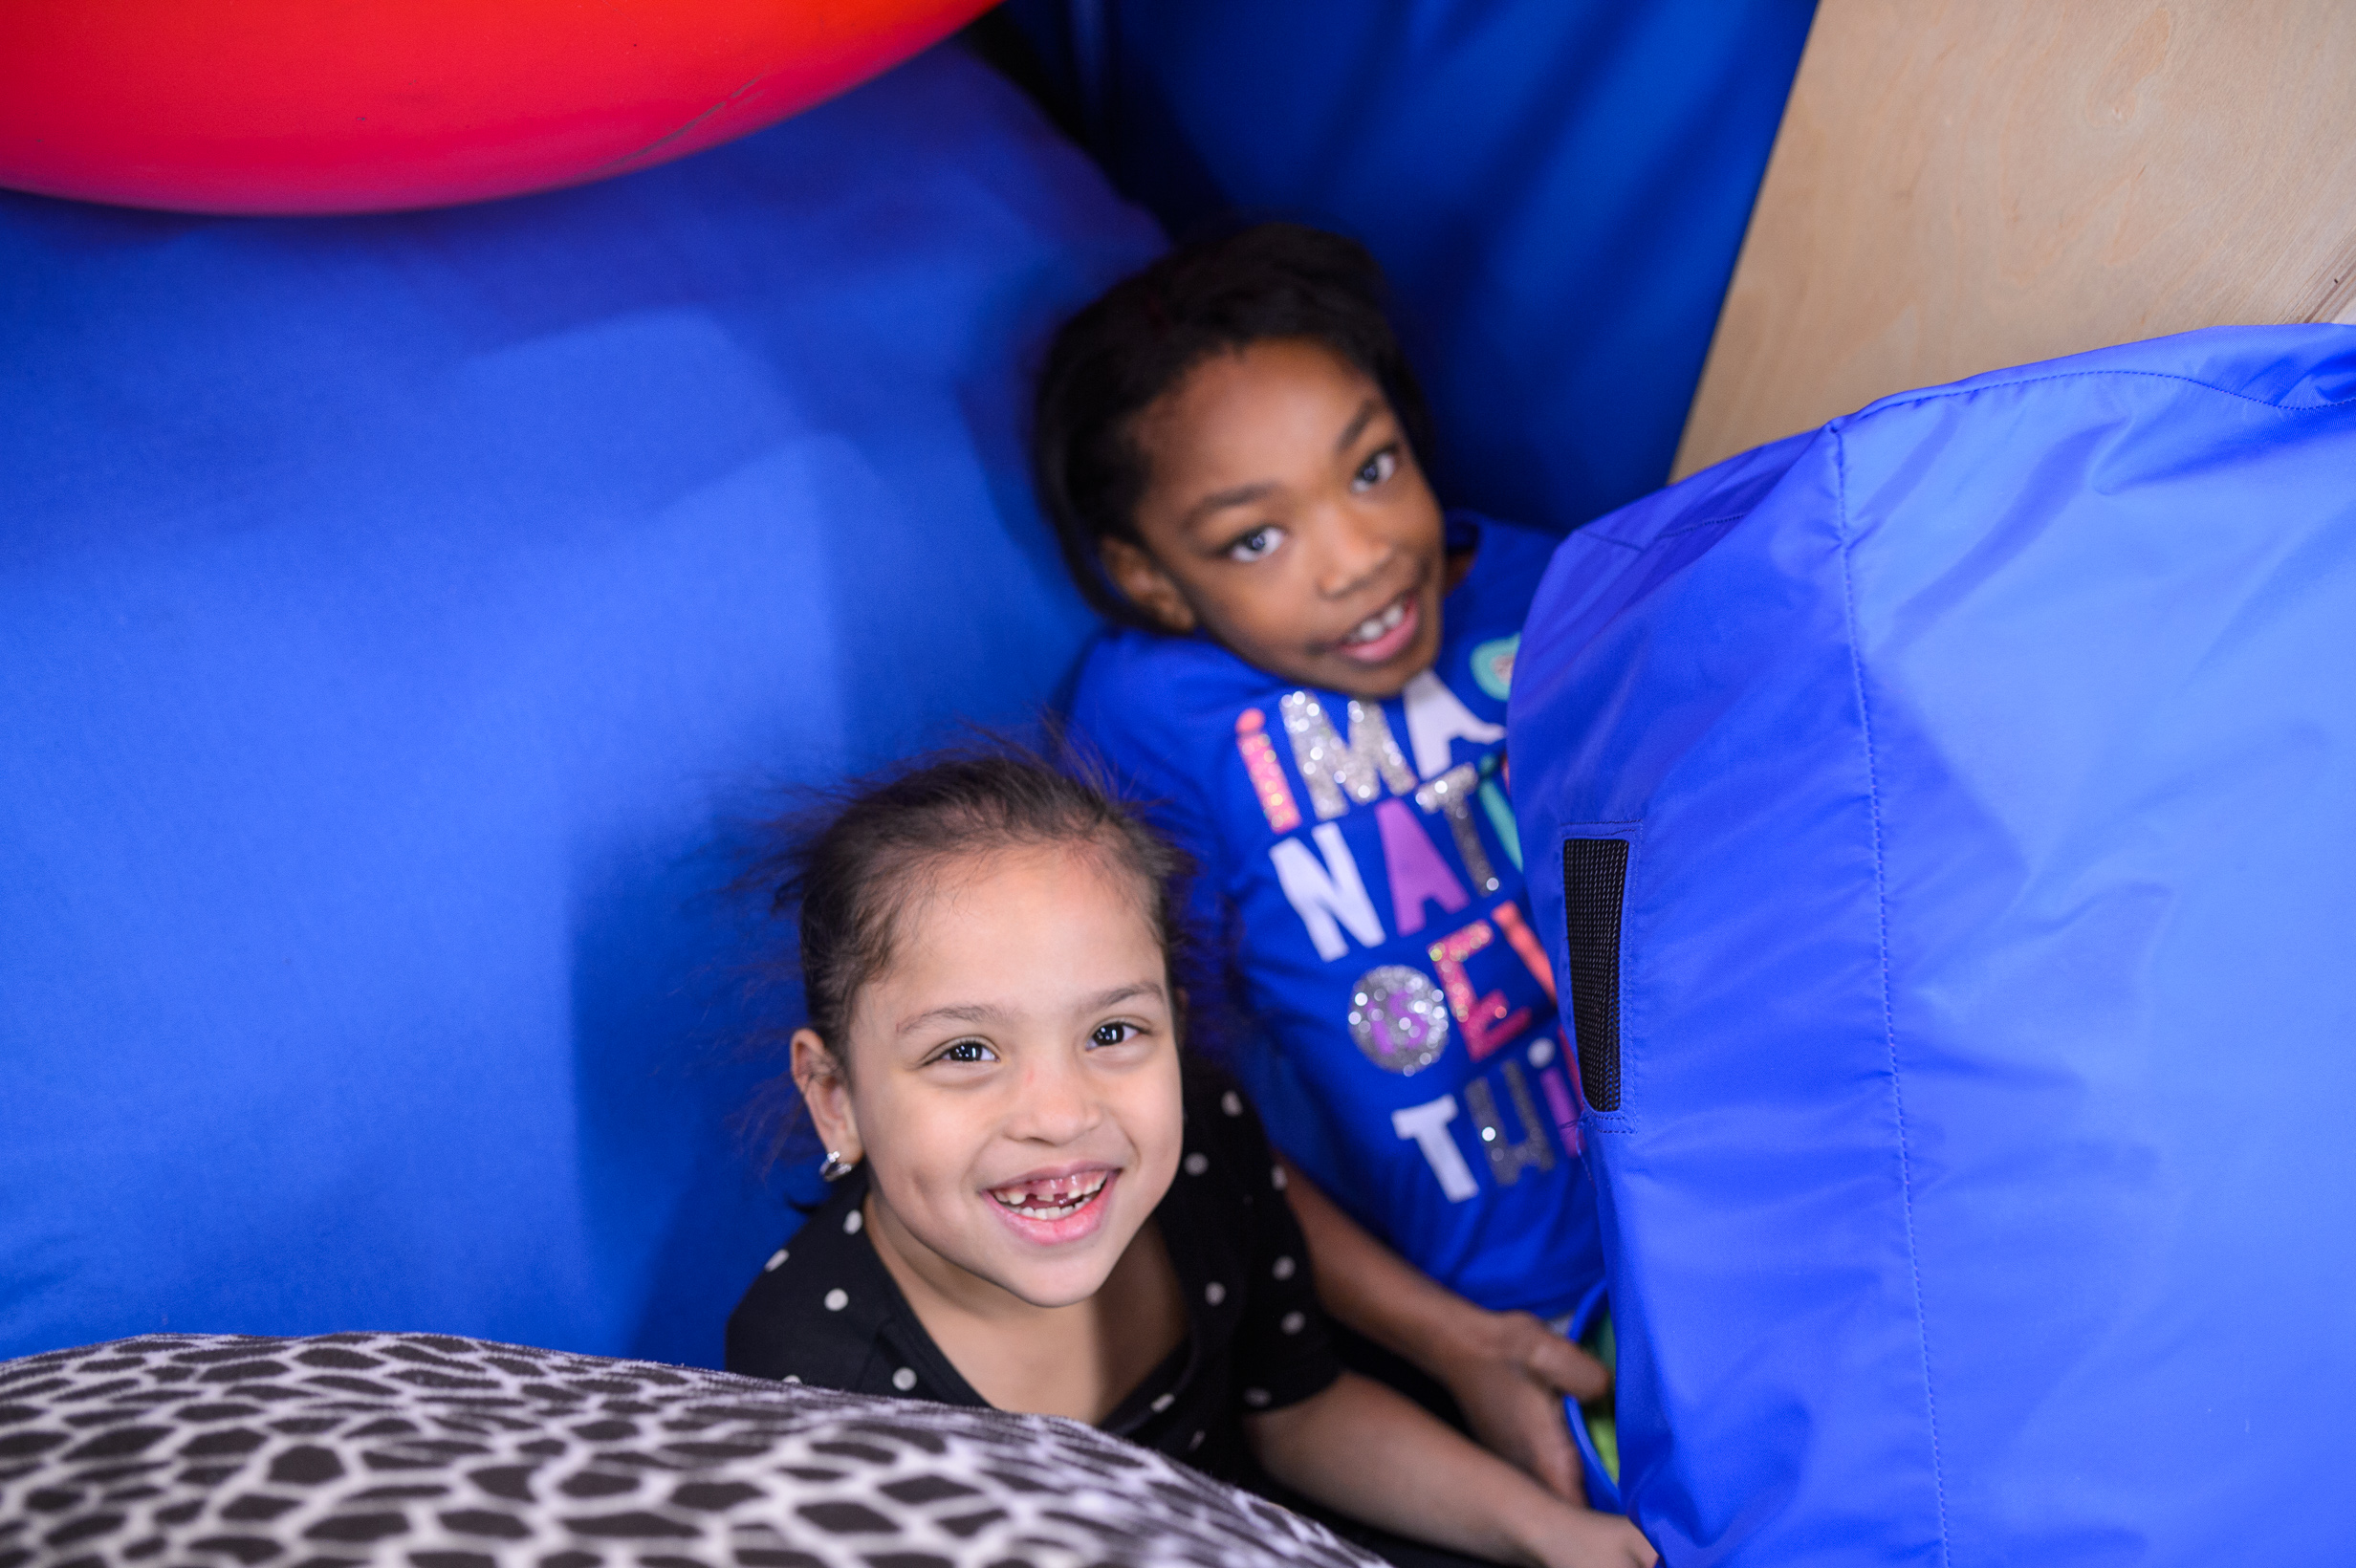 Two young girls at the sensory gym